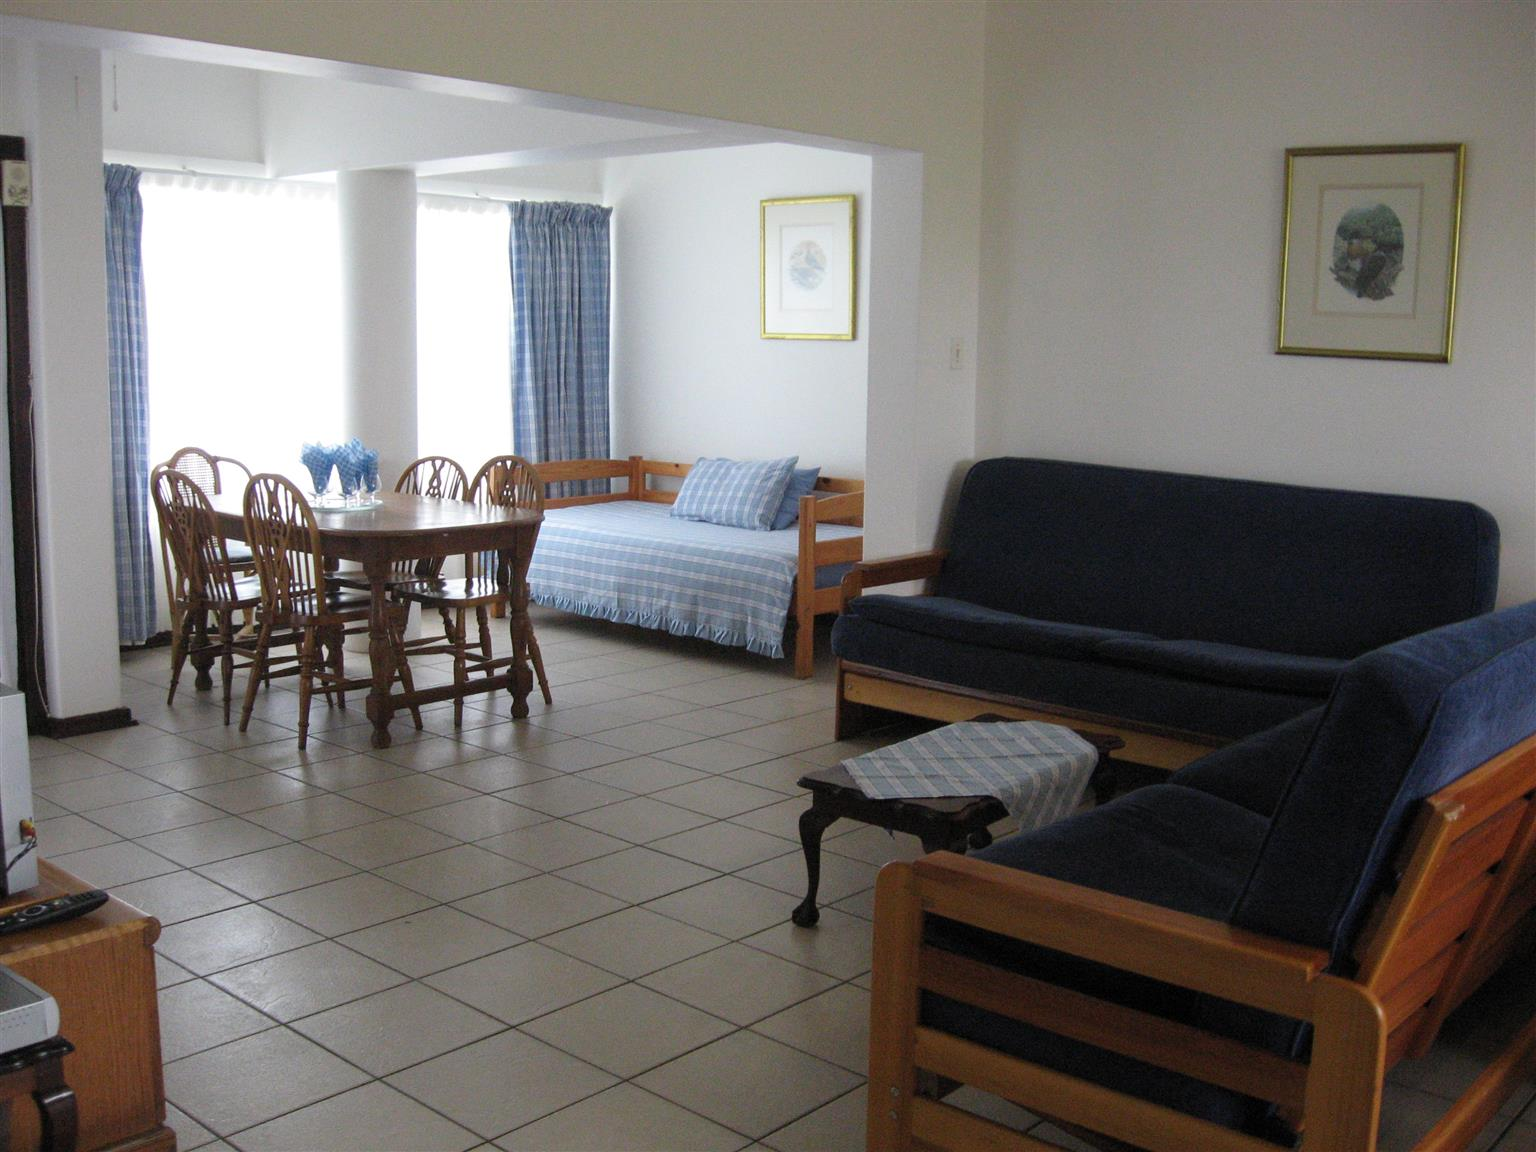 GROUND FLOOR 1 BEDROOM FURNISHED FLAT R4350 pm SHELLY BEACH ST MIKE'S UVONGO AVAILABLE JANUARY 2018